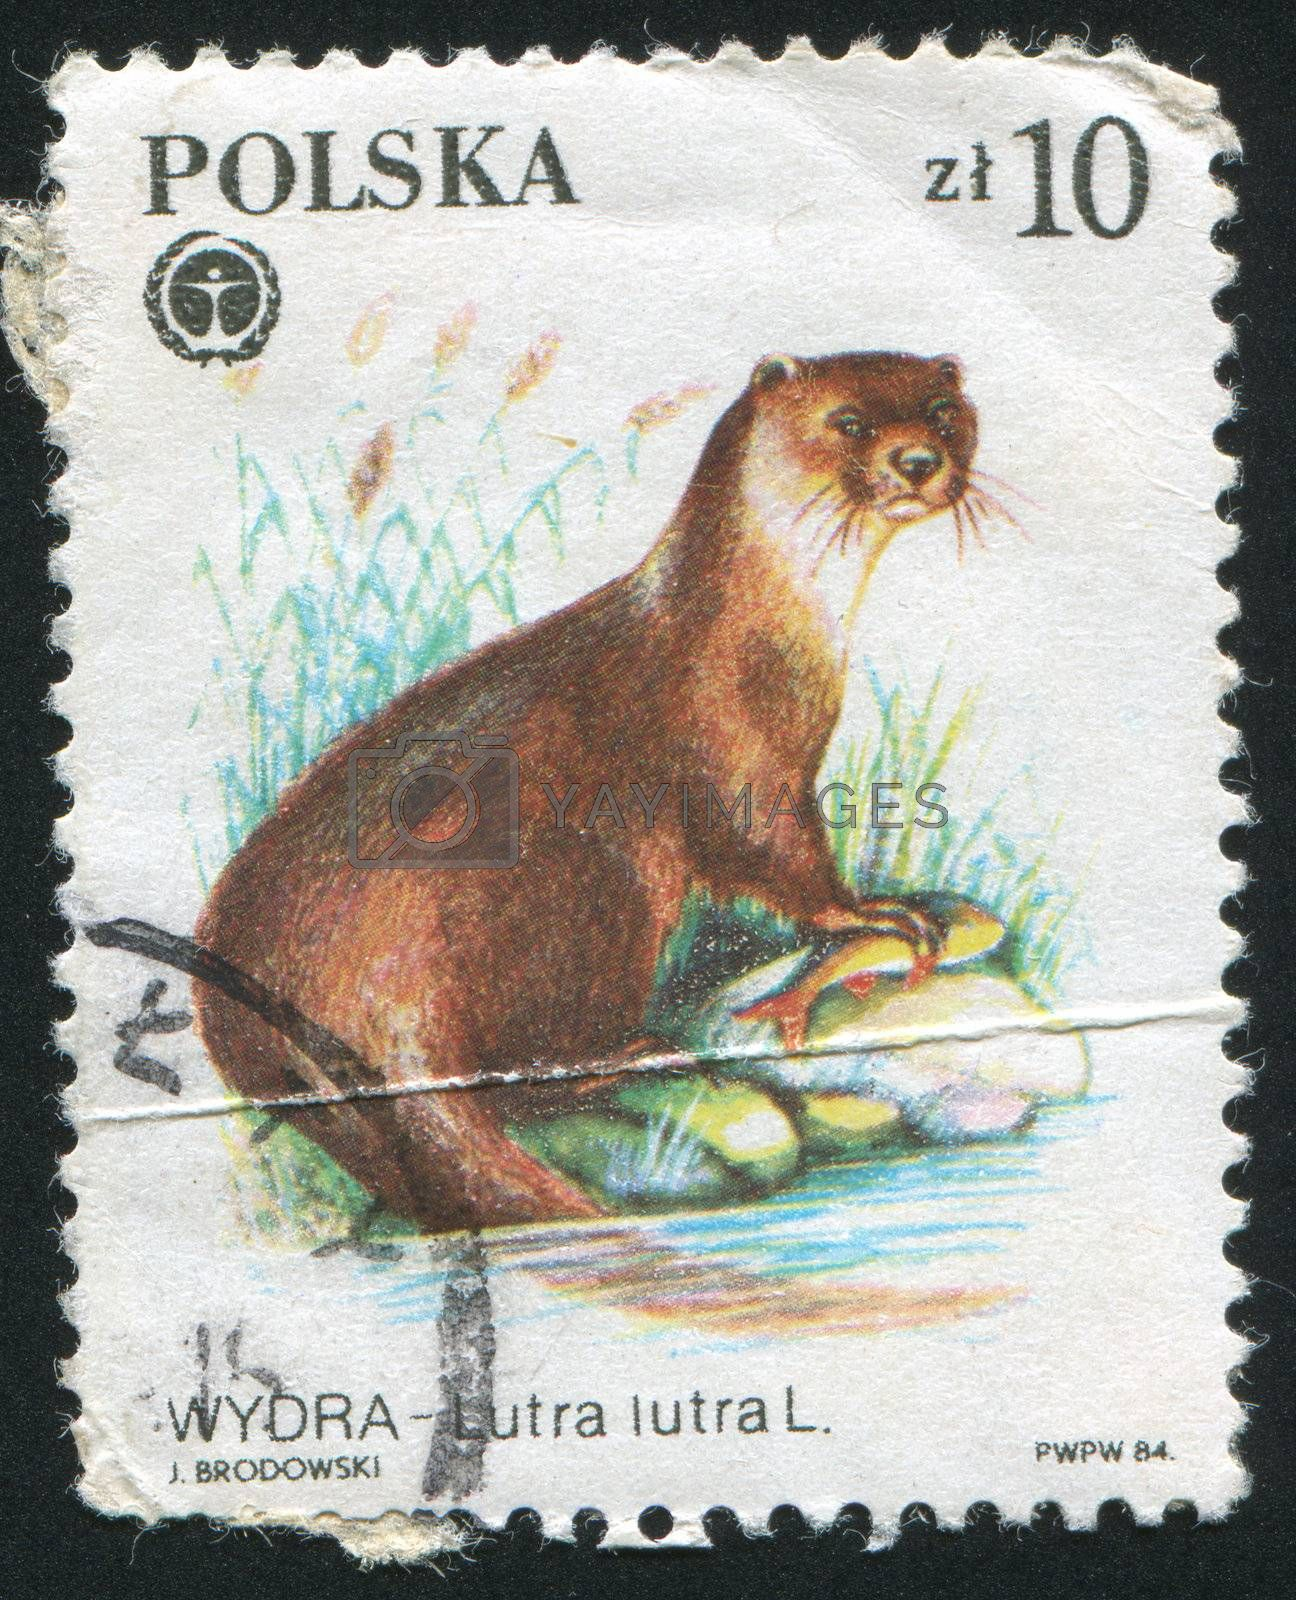 POLAND - CIRCA 1972: stamp printed by Poland, shows     otter, circa 1972.